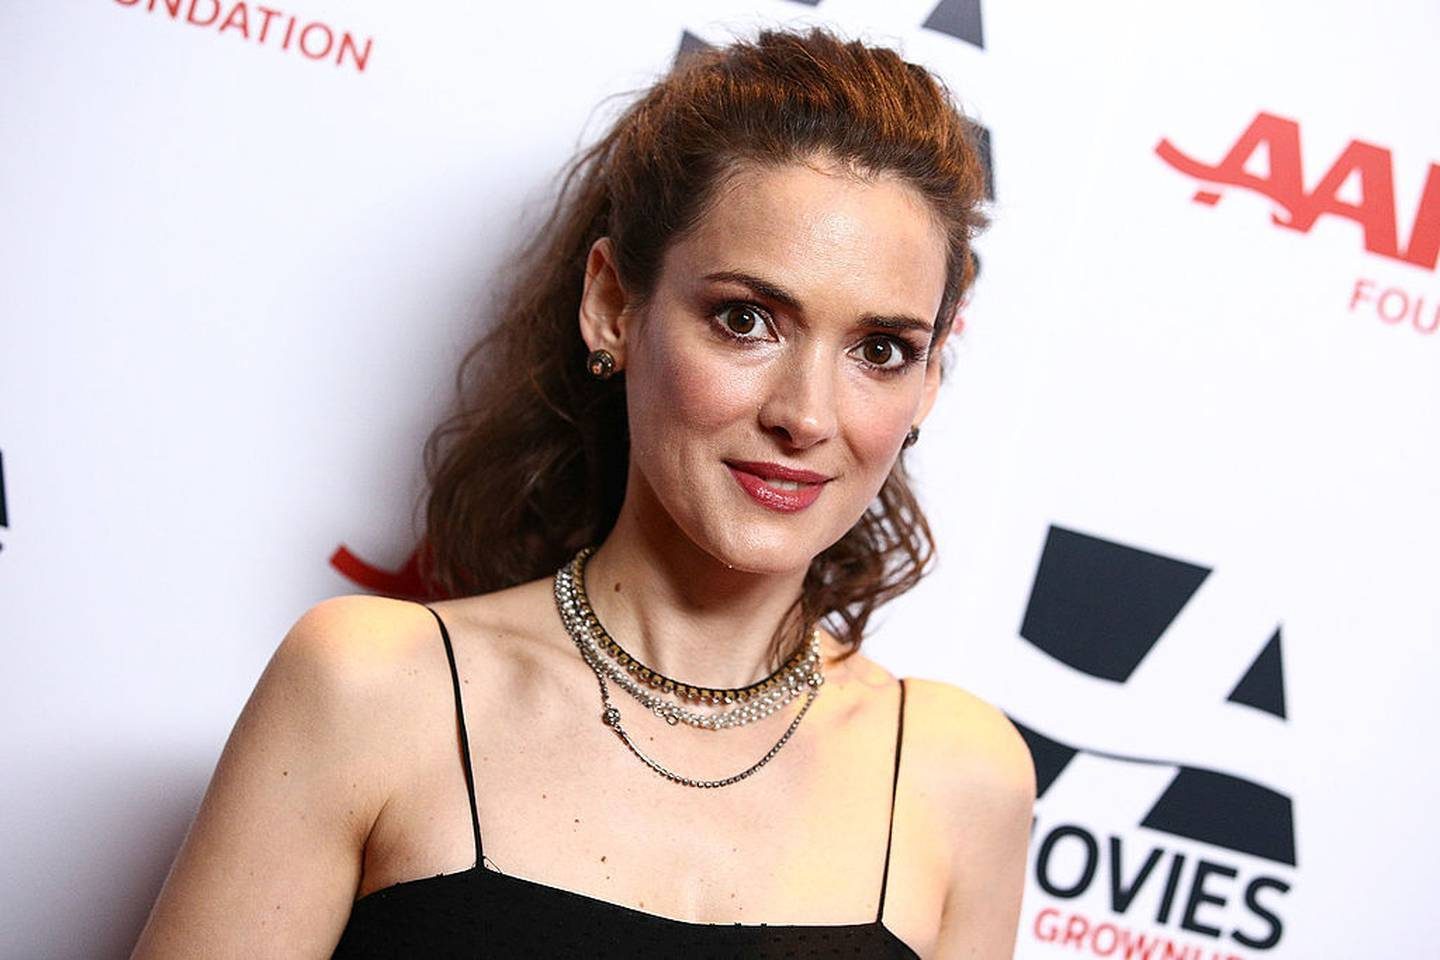 ctress Winona Ryder claimed she was left shocked after speaking with Gibson at a party in the 90s...